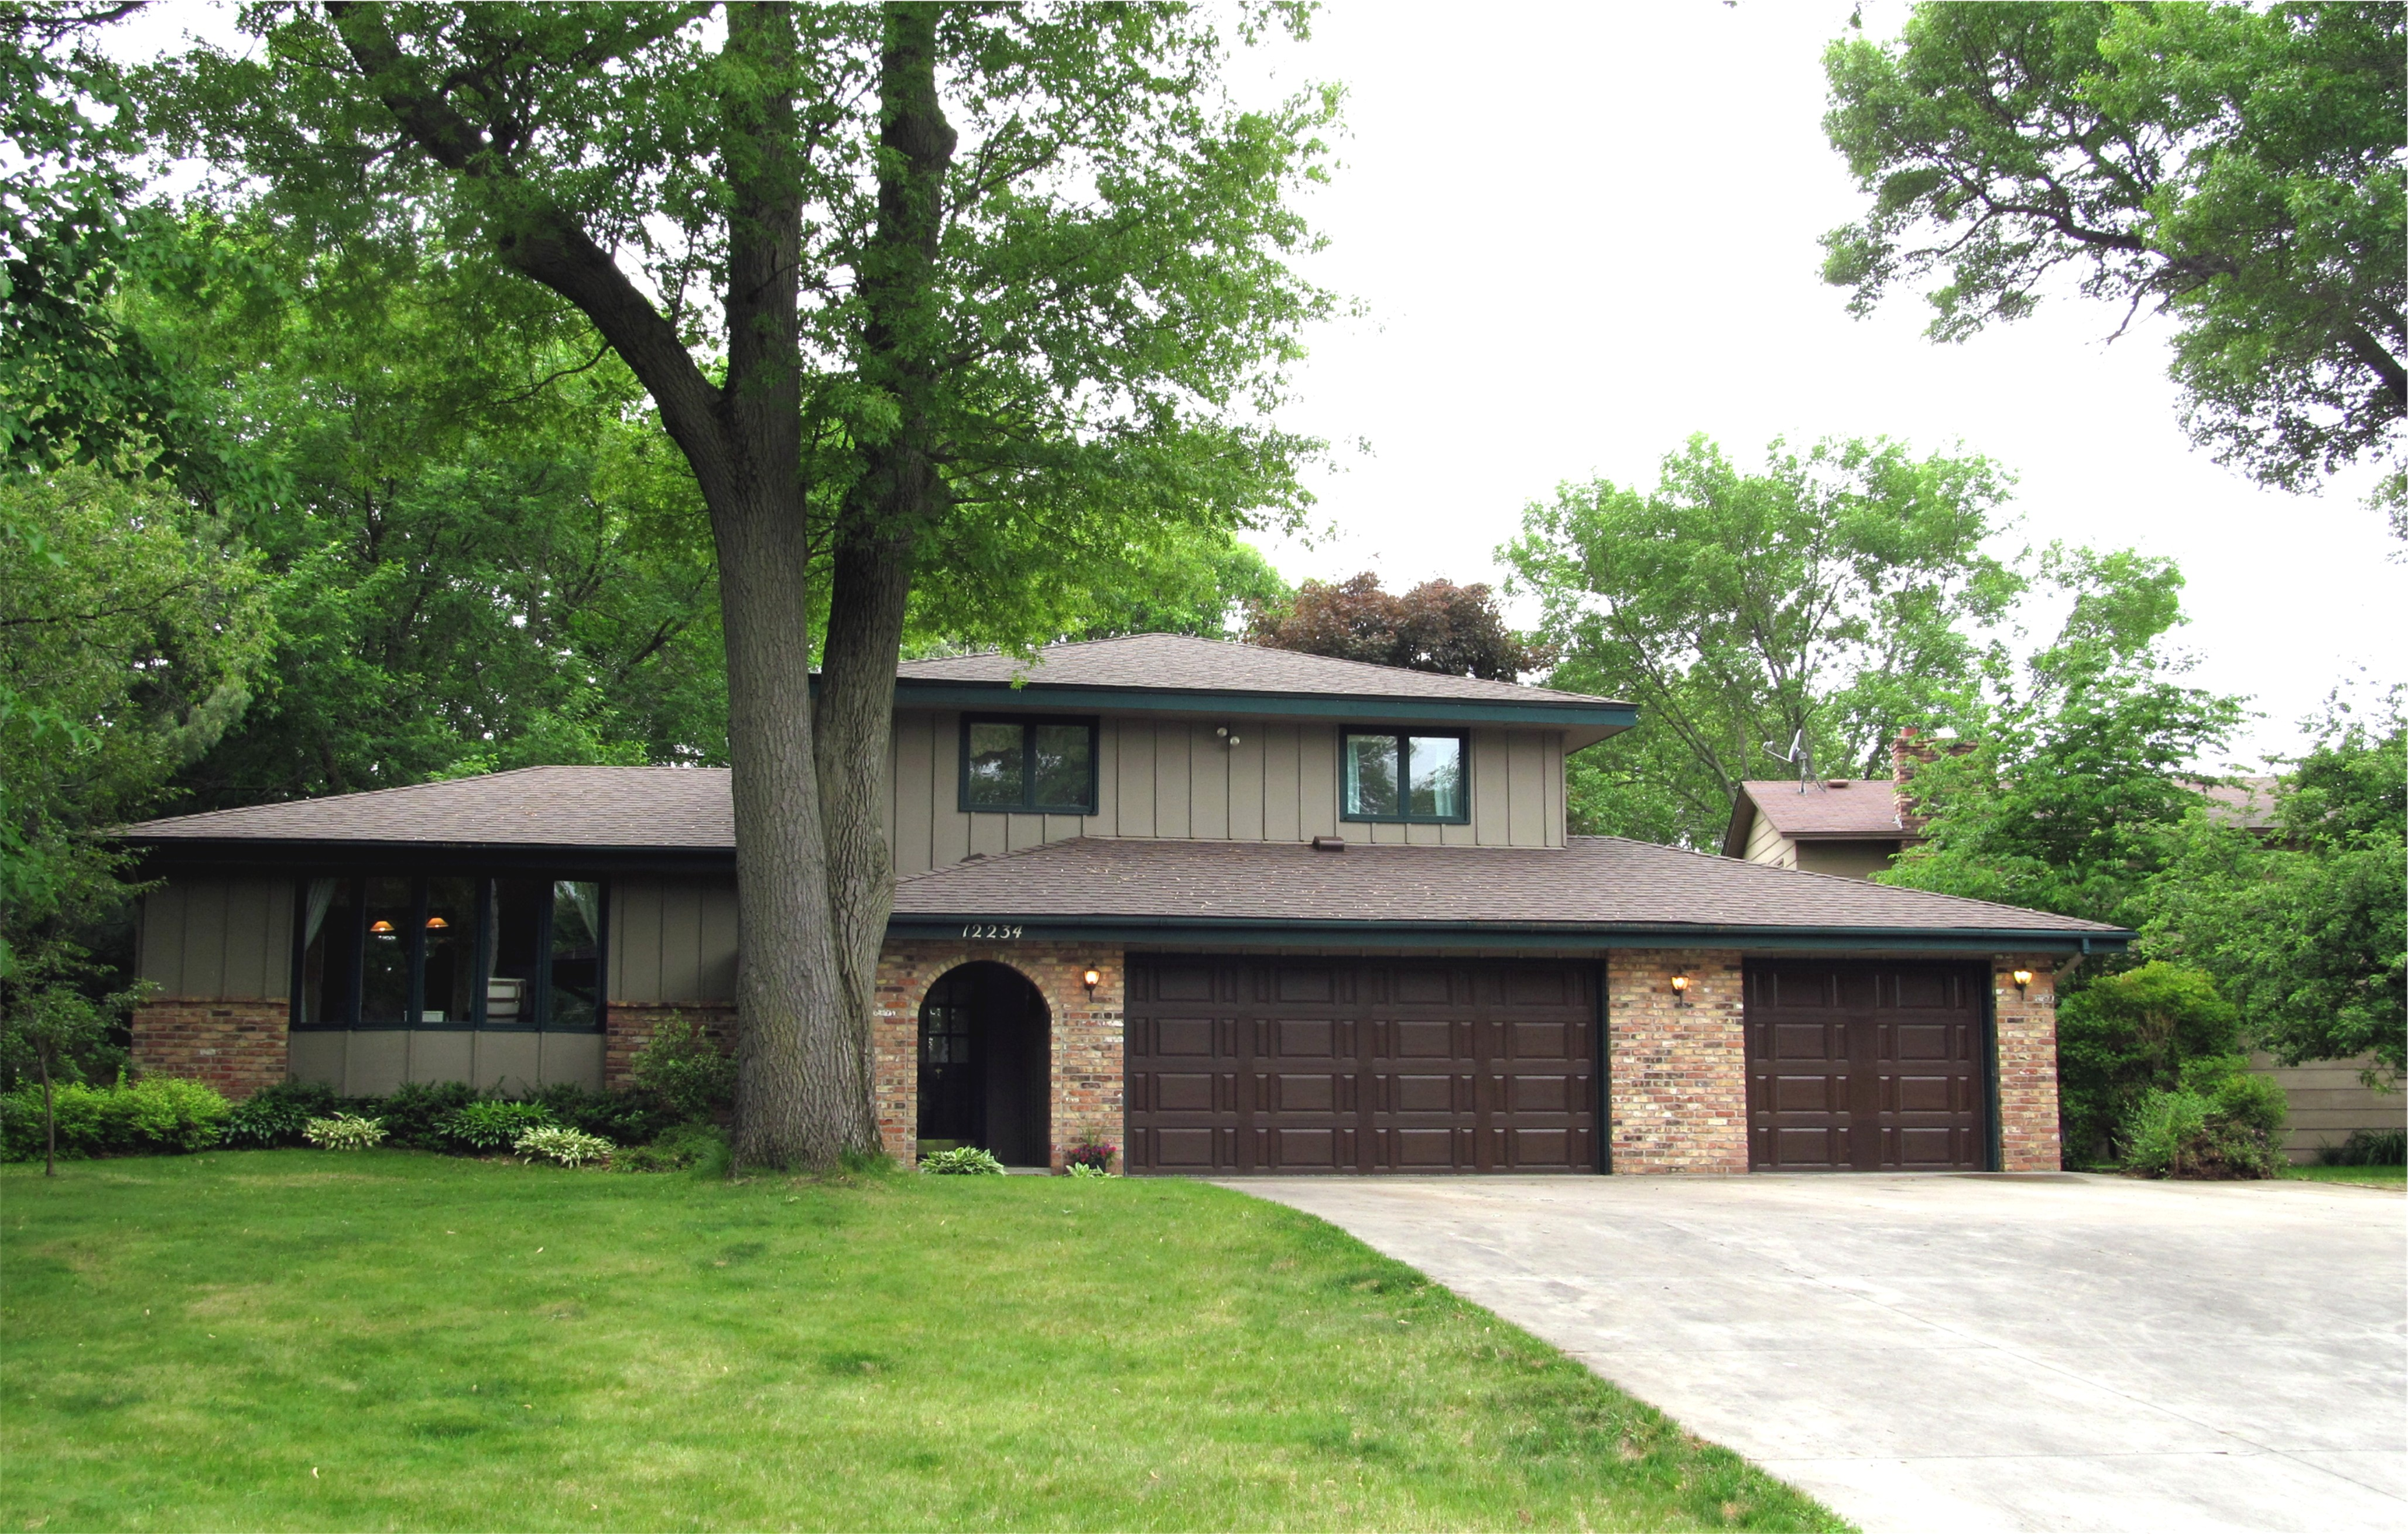 Home for Sale in Coon Rapids